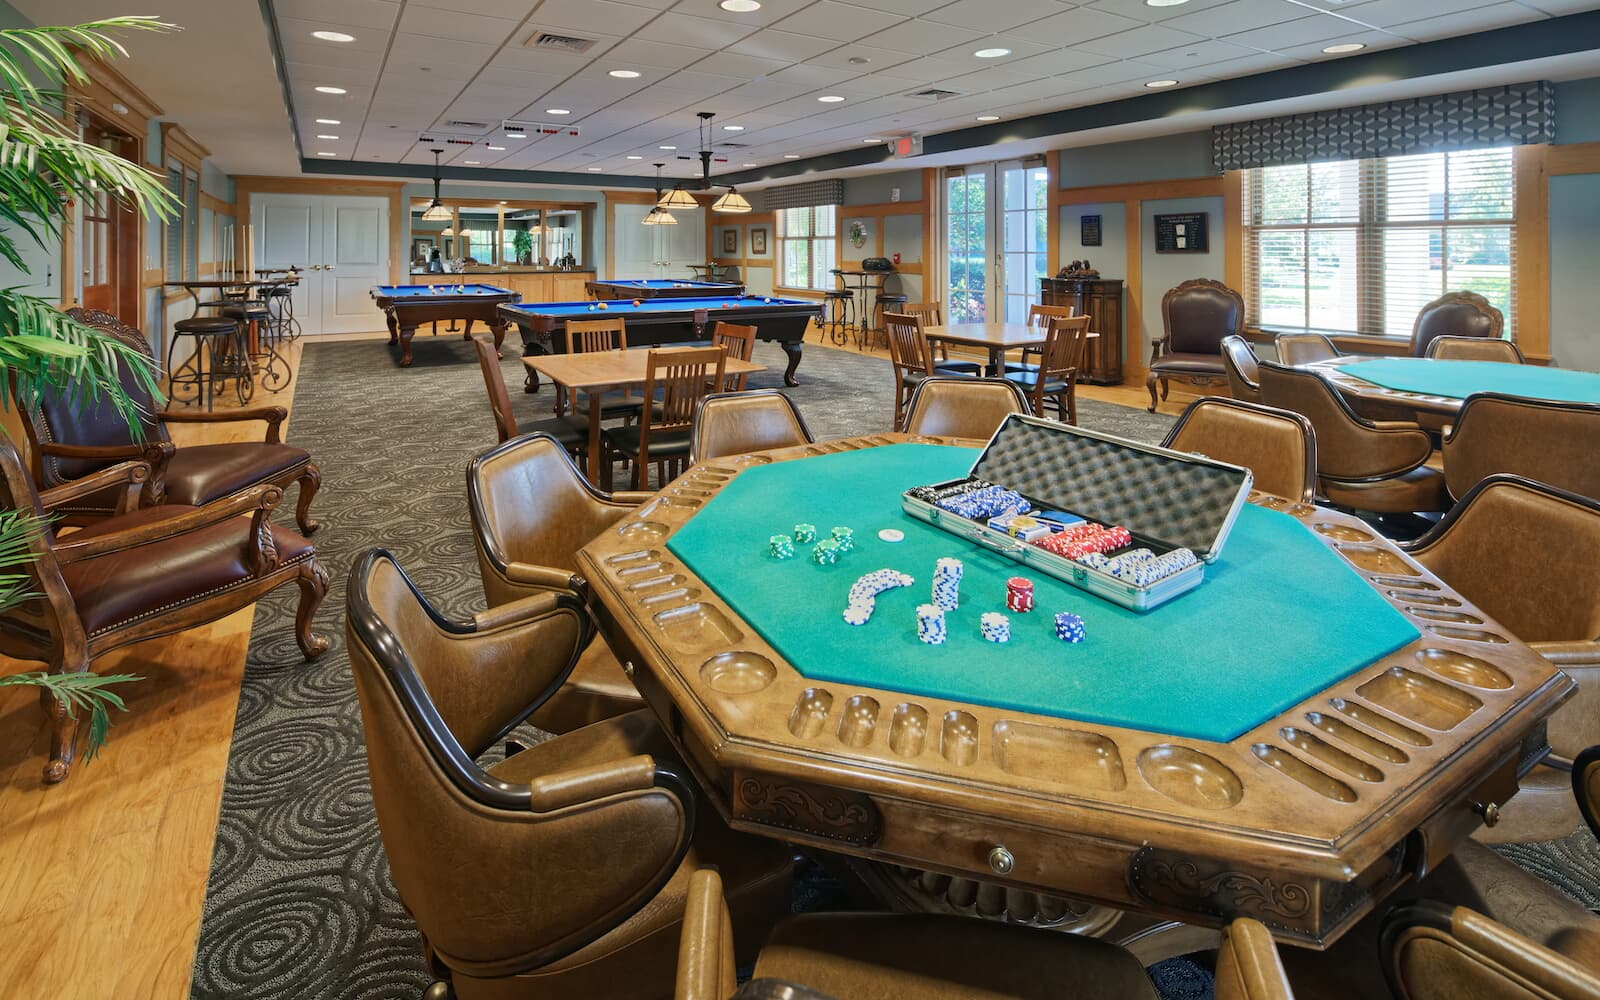 The card room in the clubhouse at Heritage Shores in Bridgeville DE